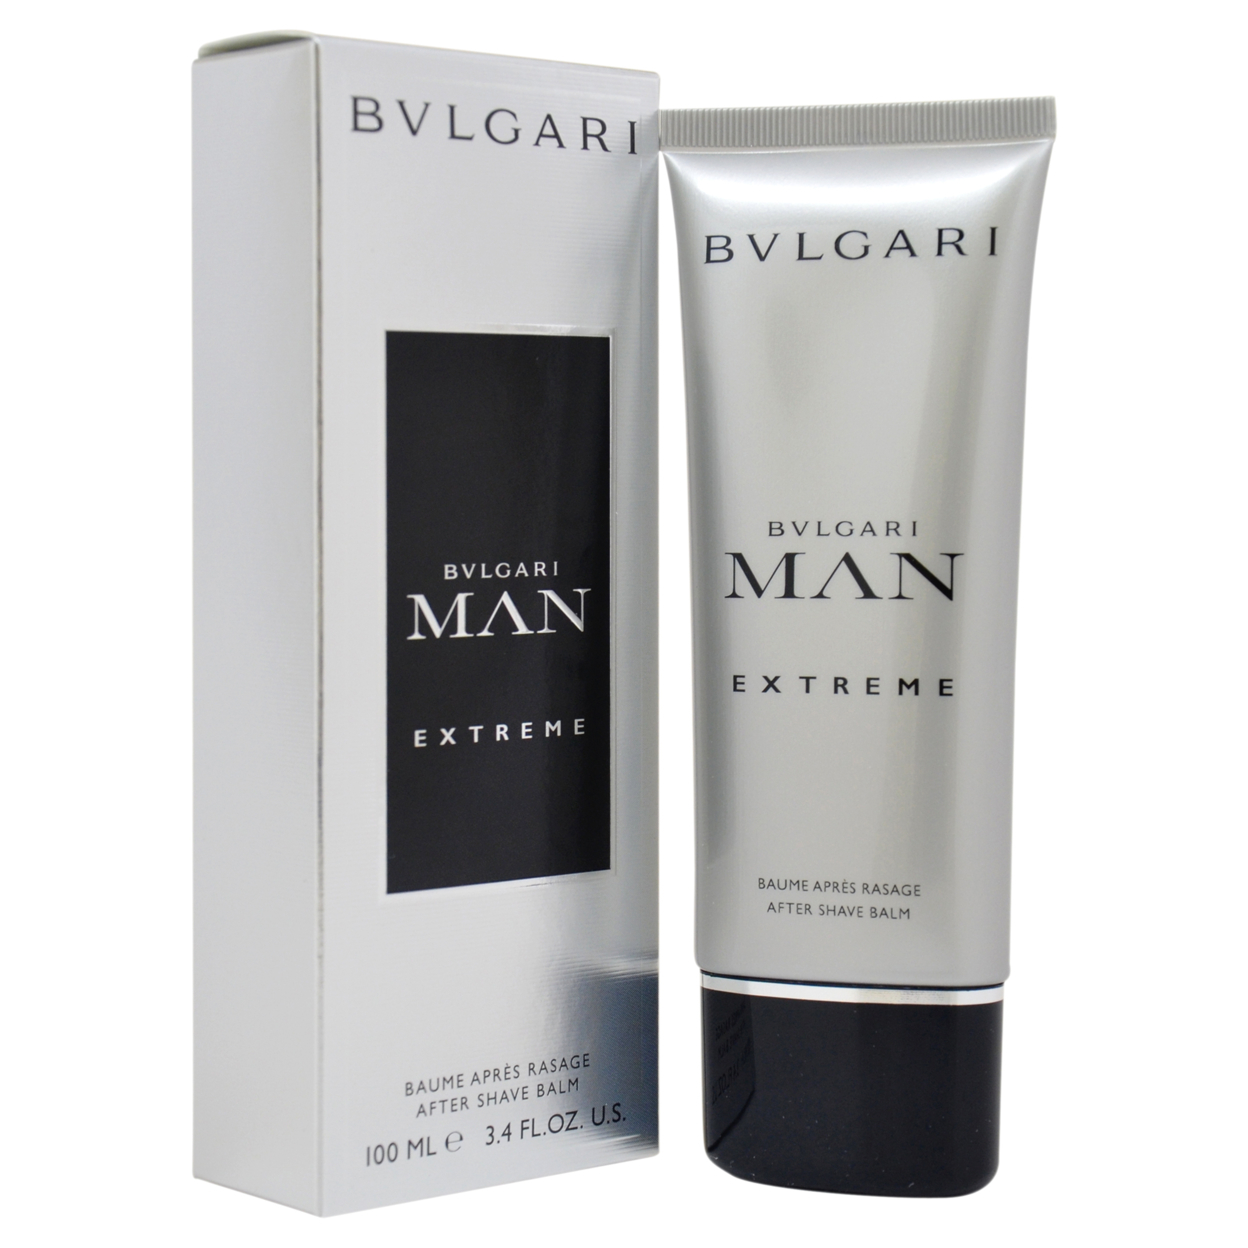 Bvlgari Man Extreme By Bvlgari For Men 3.4 Oz After Shave Balm